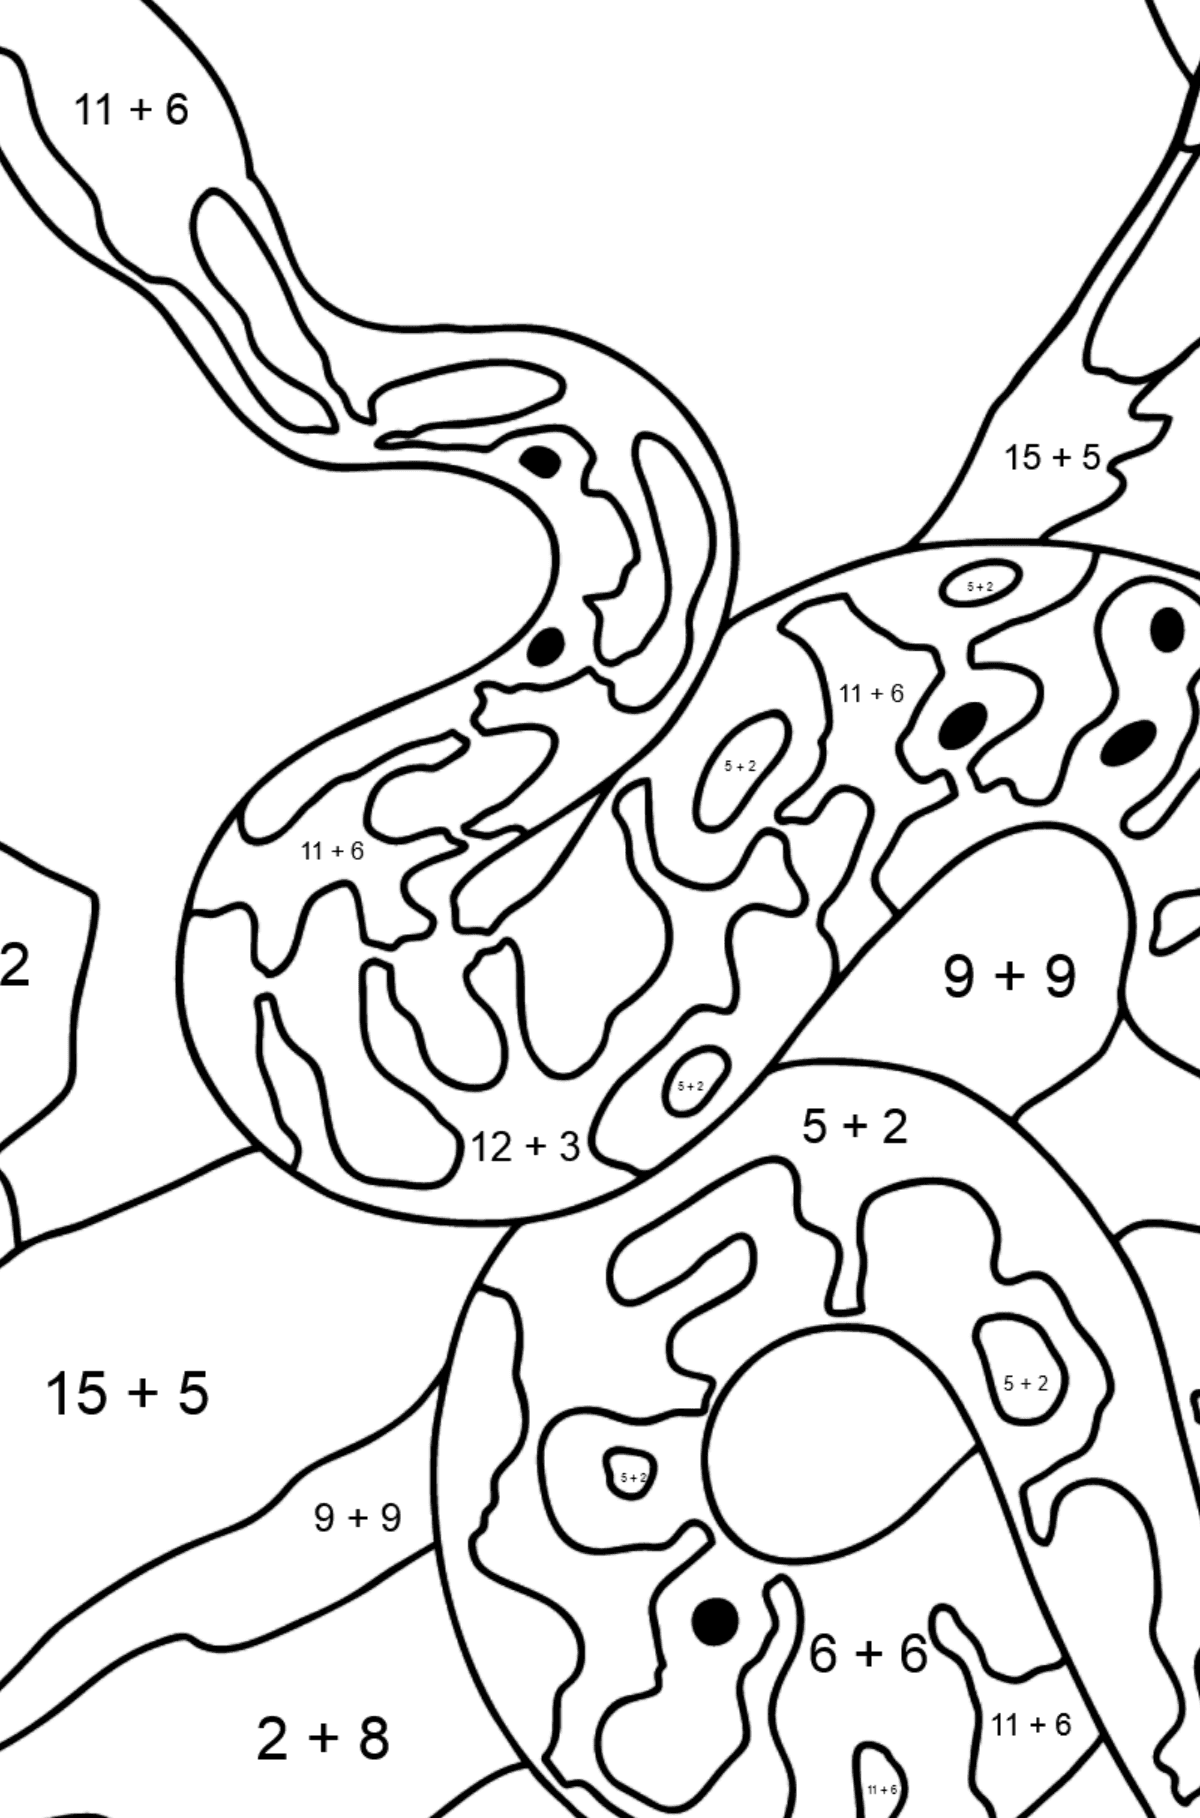 A Snake is Preparing for a Hunt Coloring Page - Math Coloring - Addition for Kids